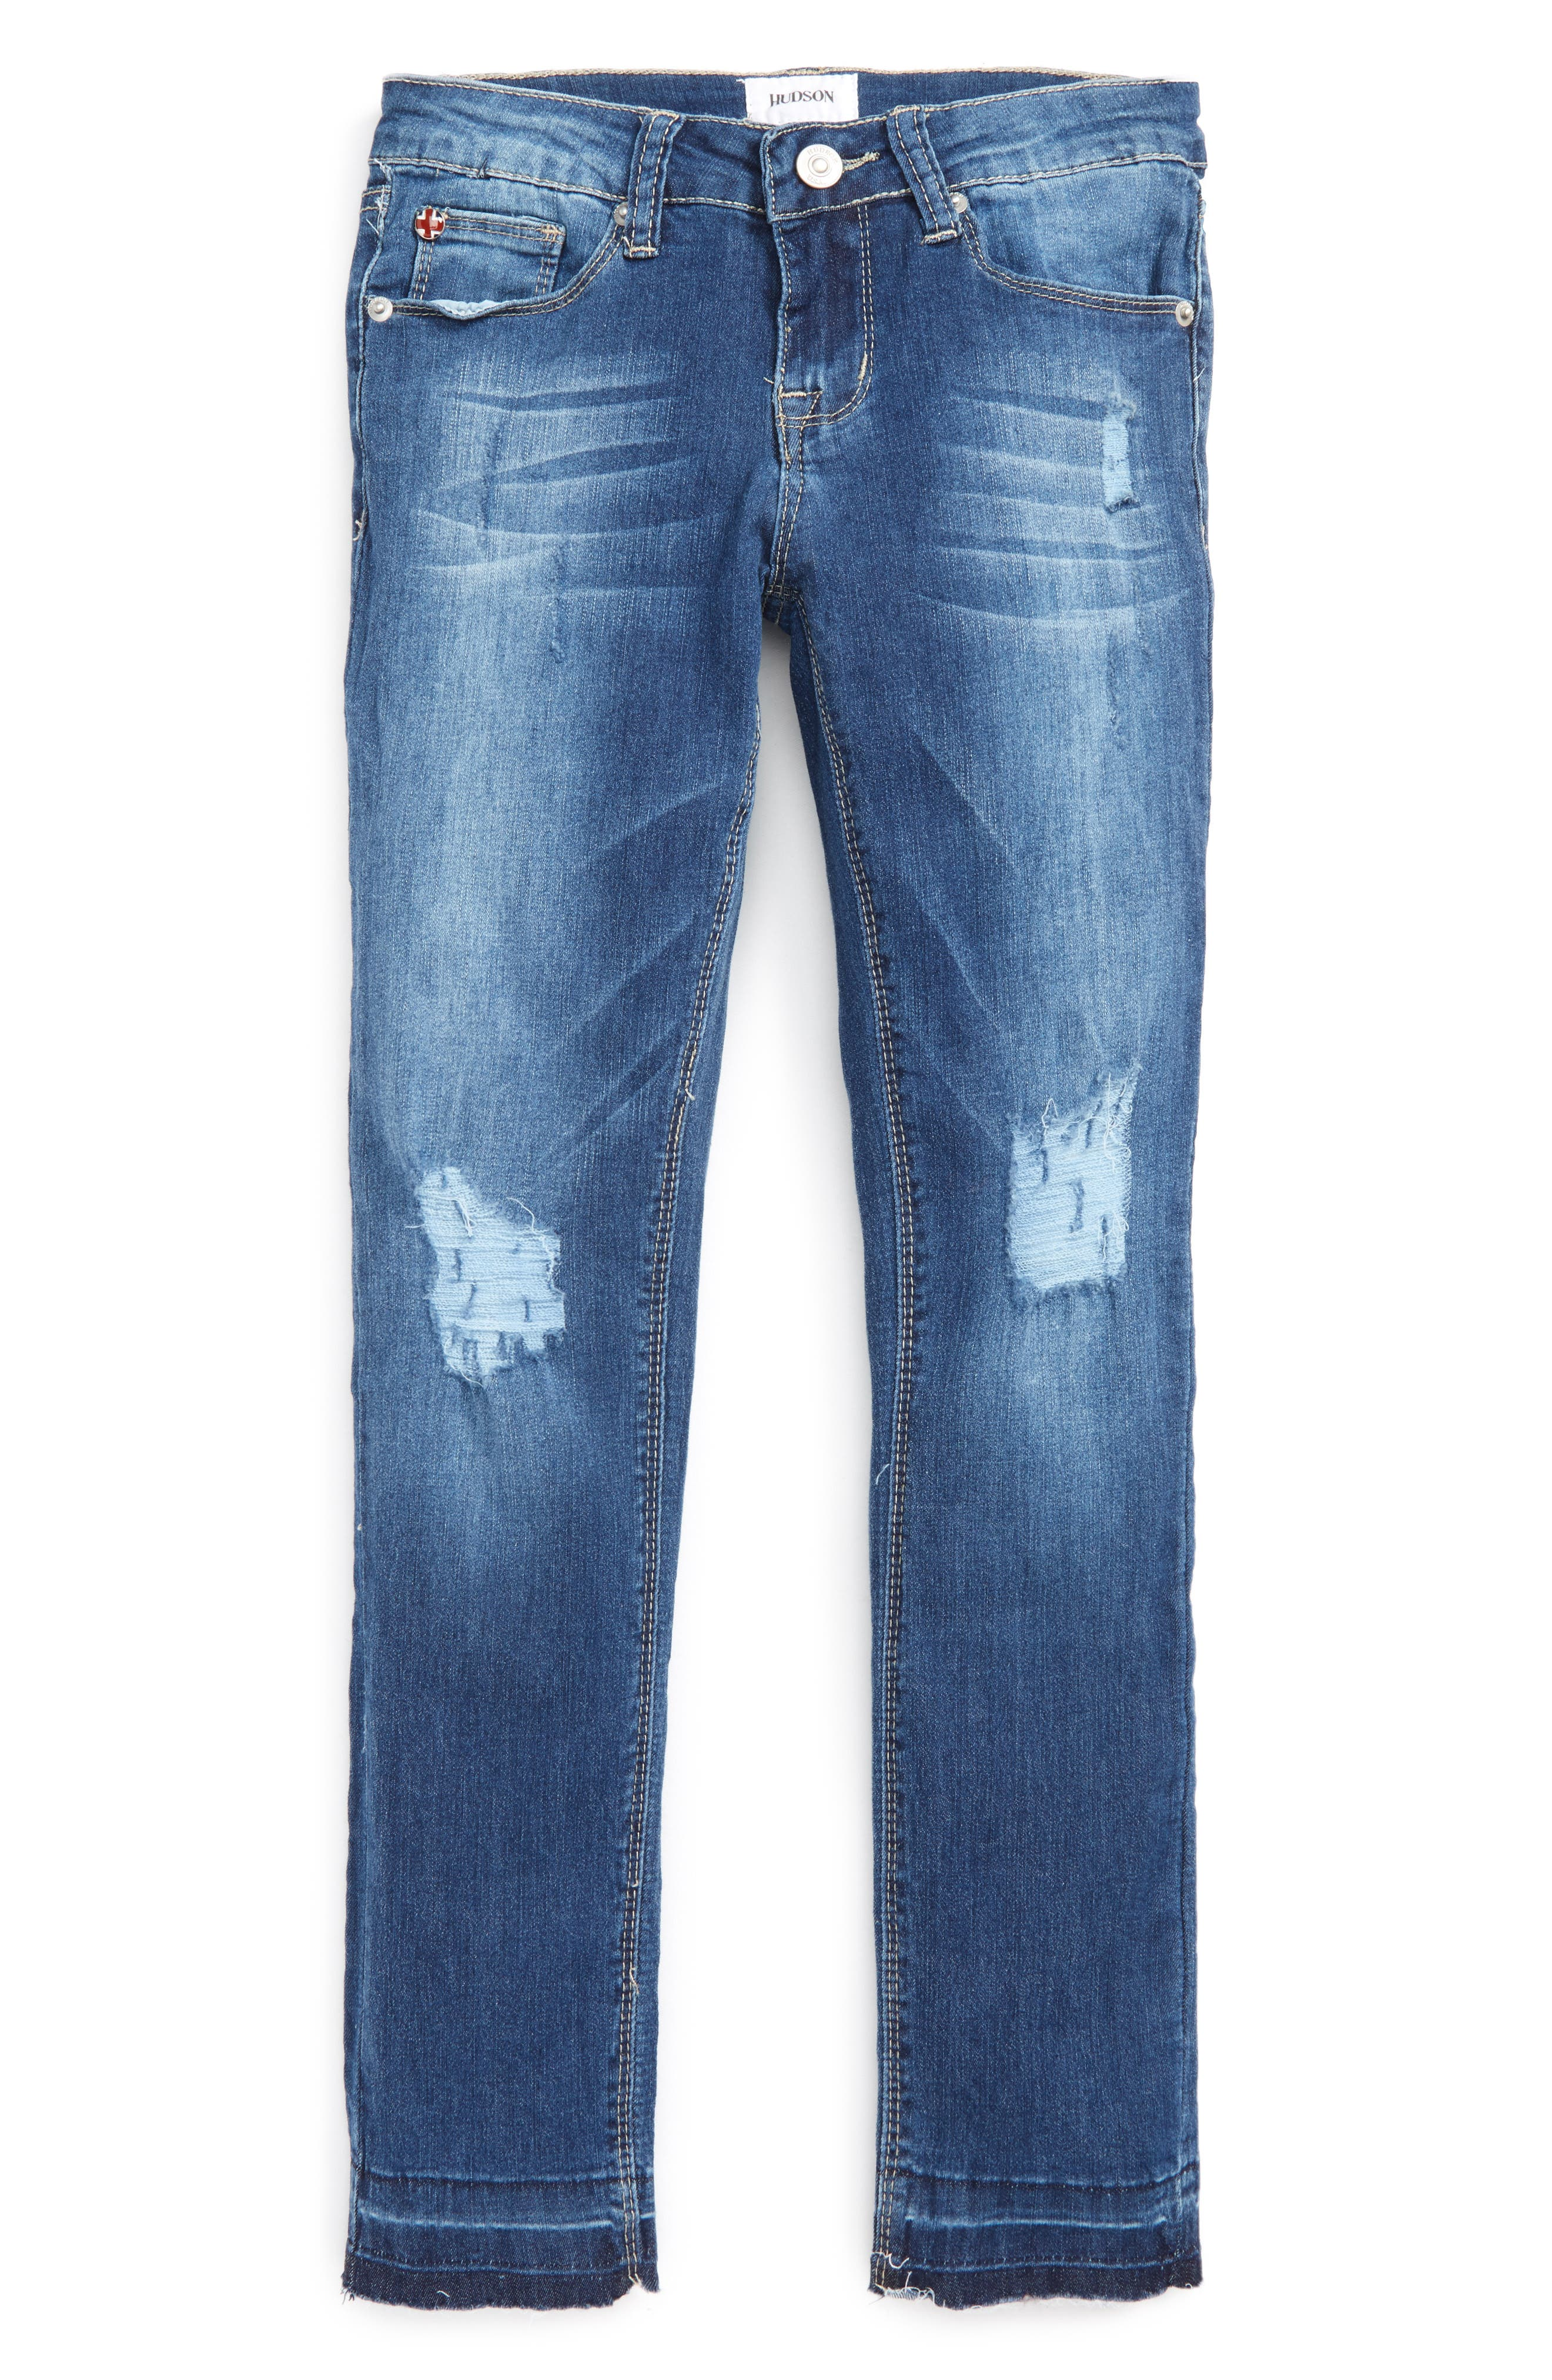 Main Image - Hudson Kids Nico Ankle Skinny Jeans (Big Girls)